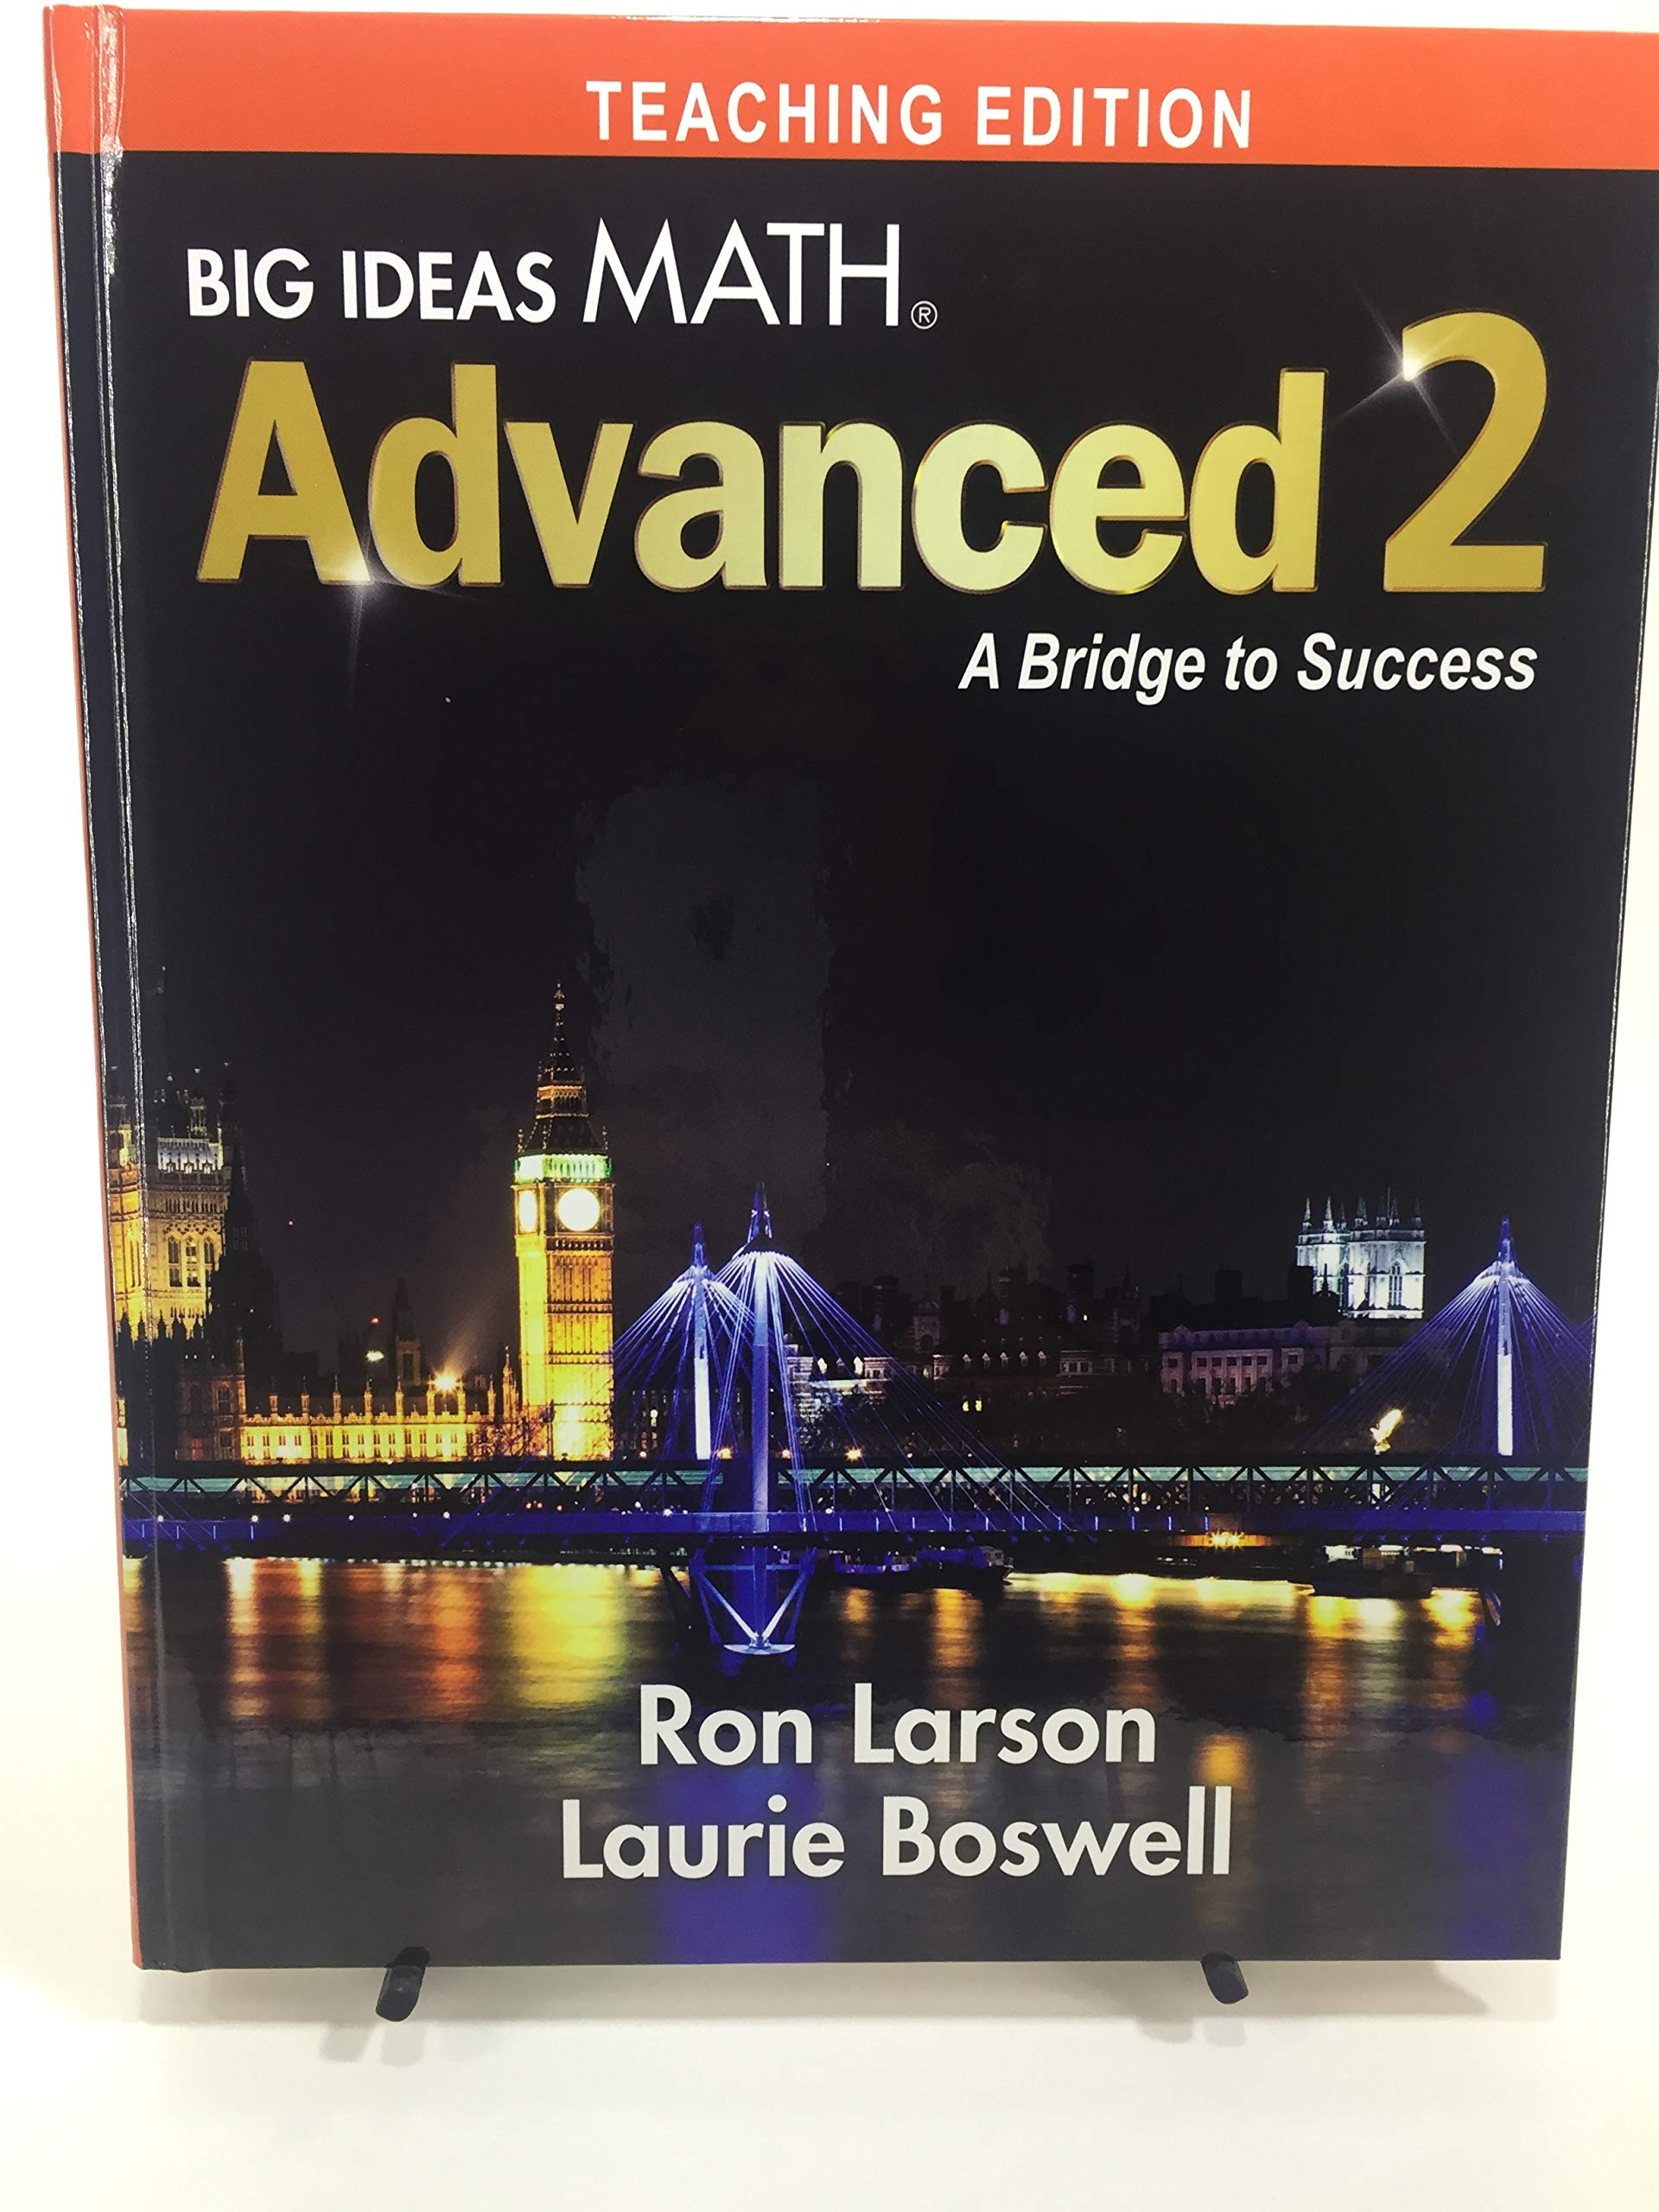 Big Ideas Math Advanced 2 A Bridge to Success Teaching Edition